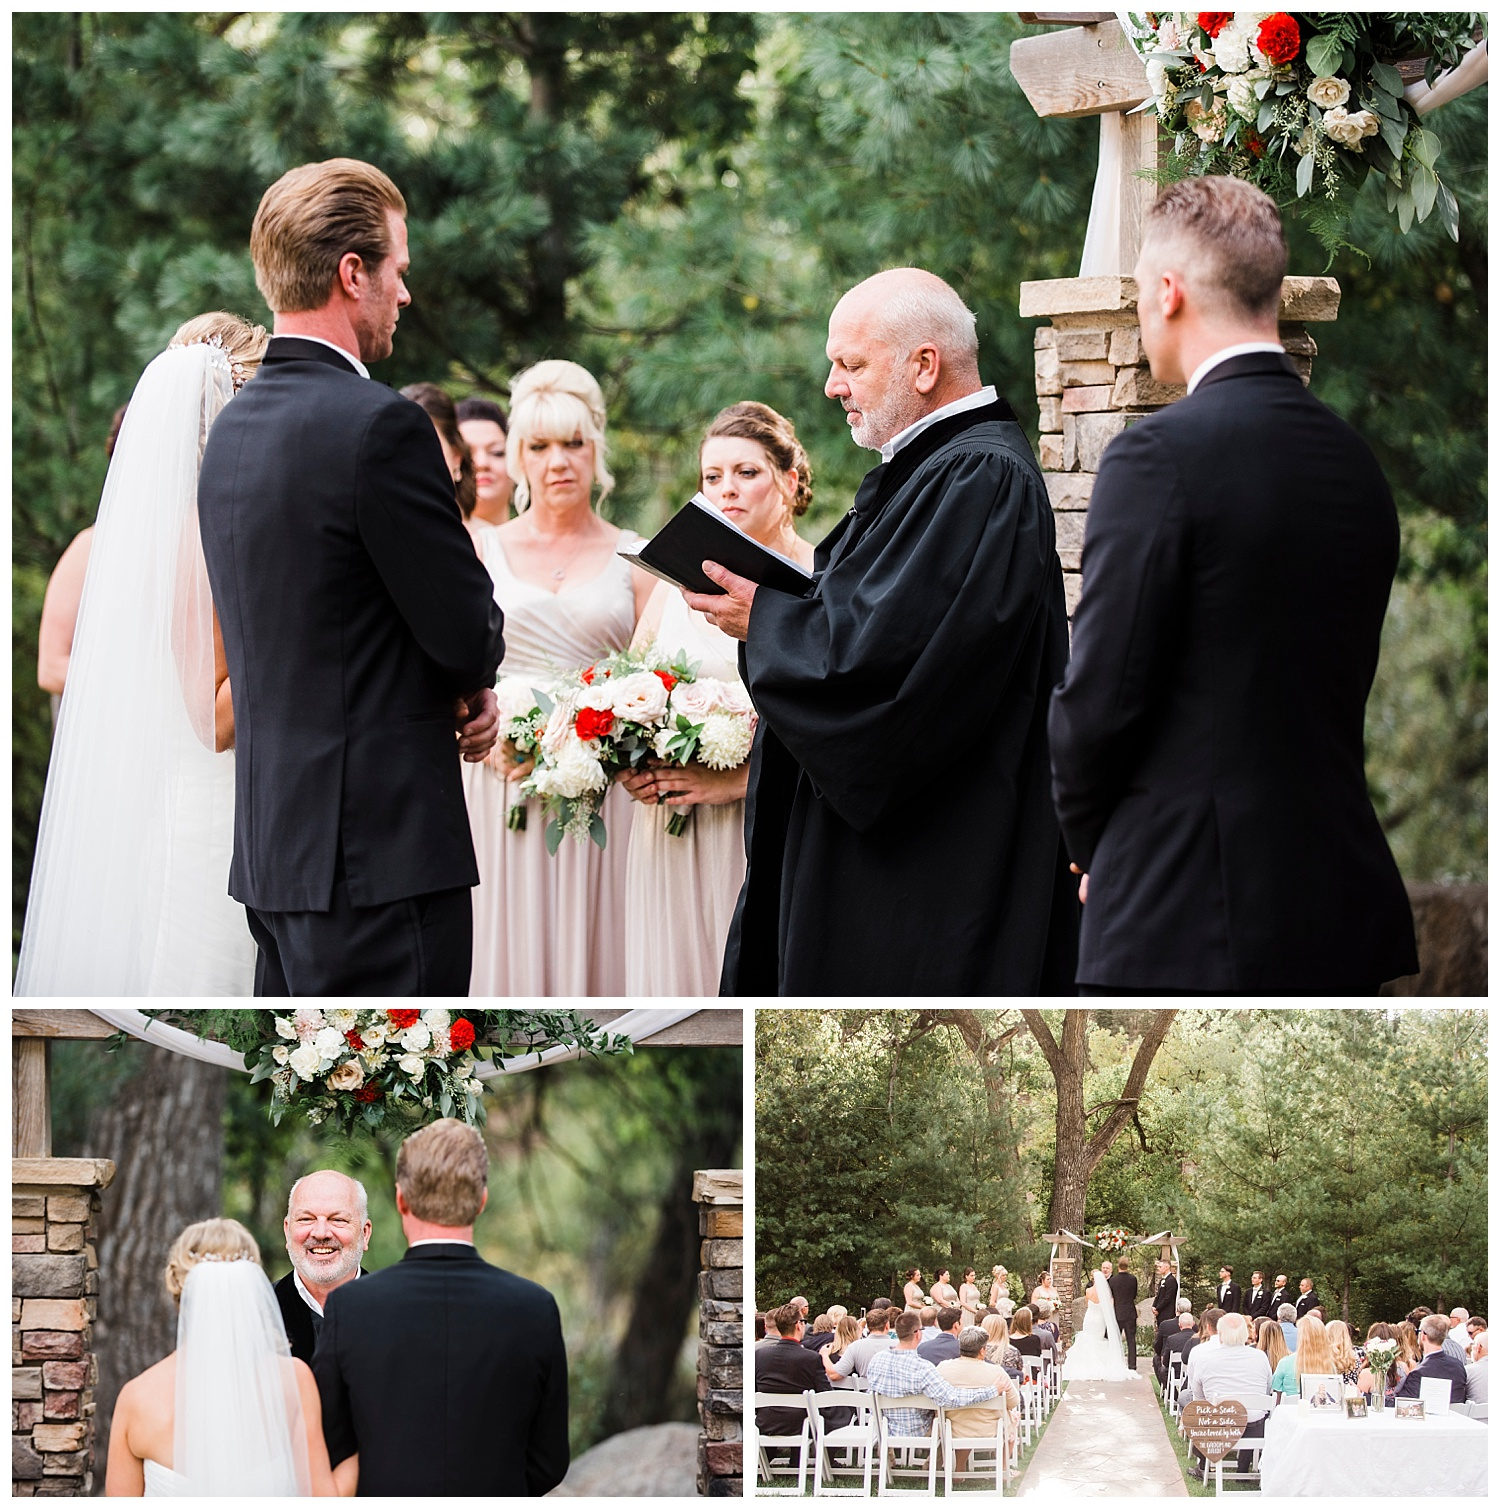 Wedgewood_Boulder_Creek_Wedding_Venue_Colorado_Photographer_Apollo_Fields_037.jpg